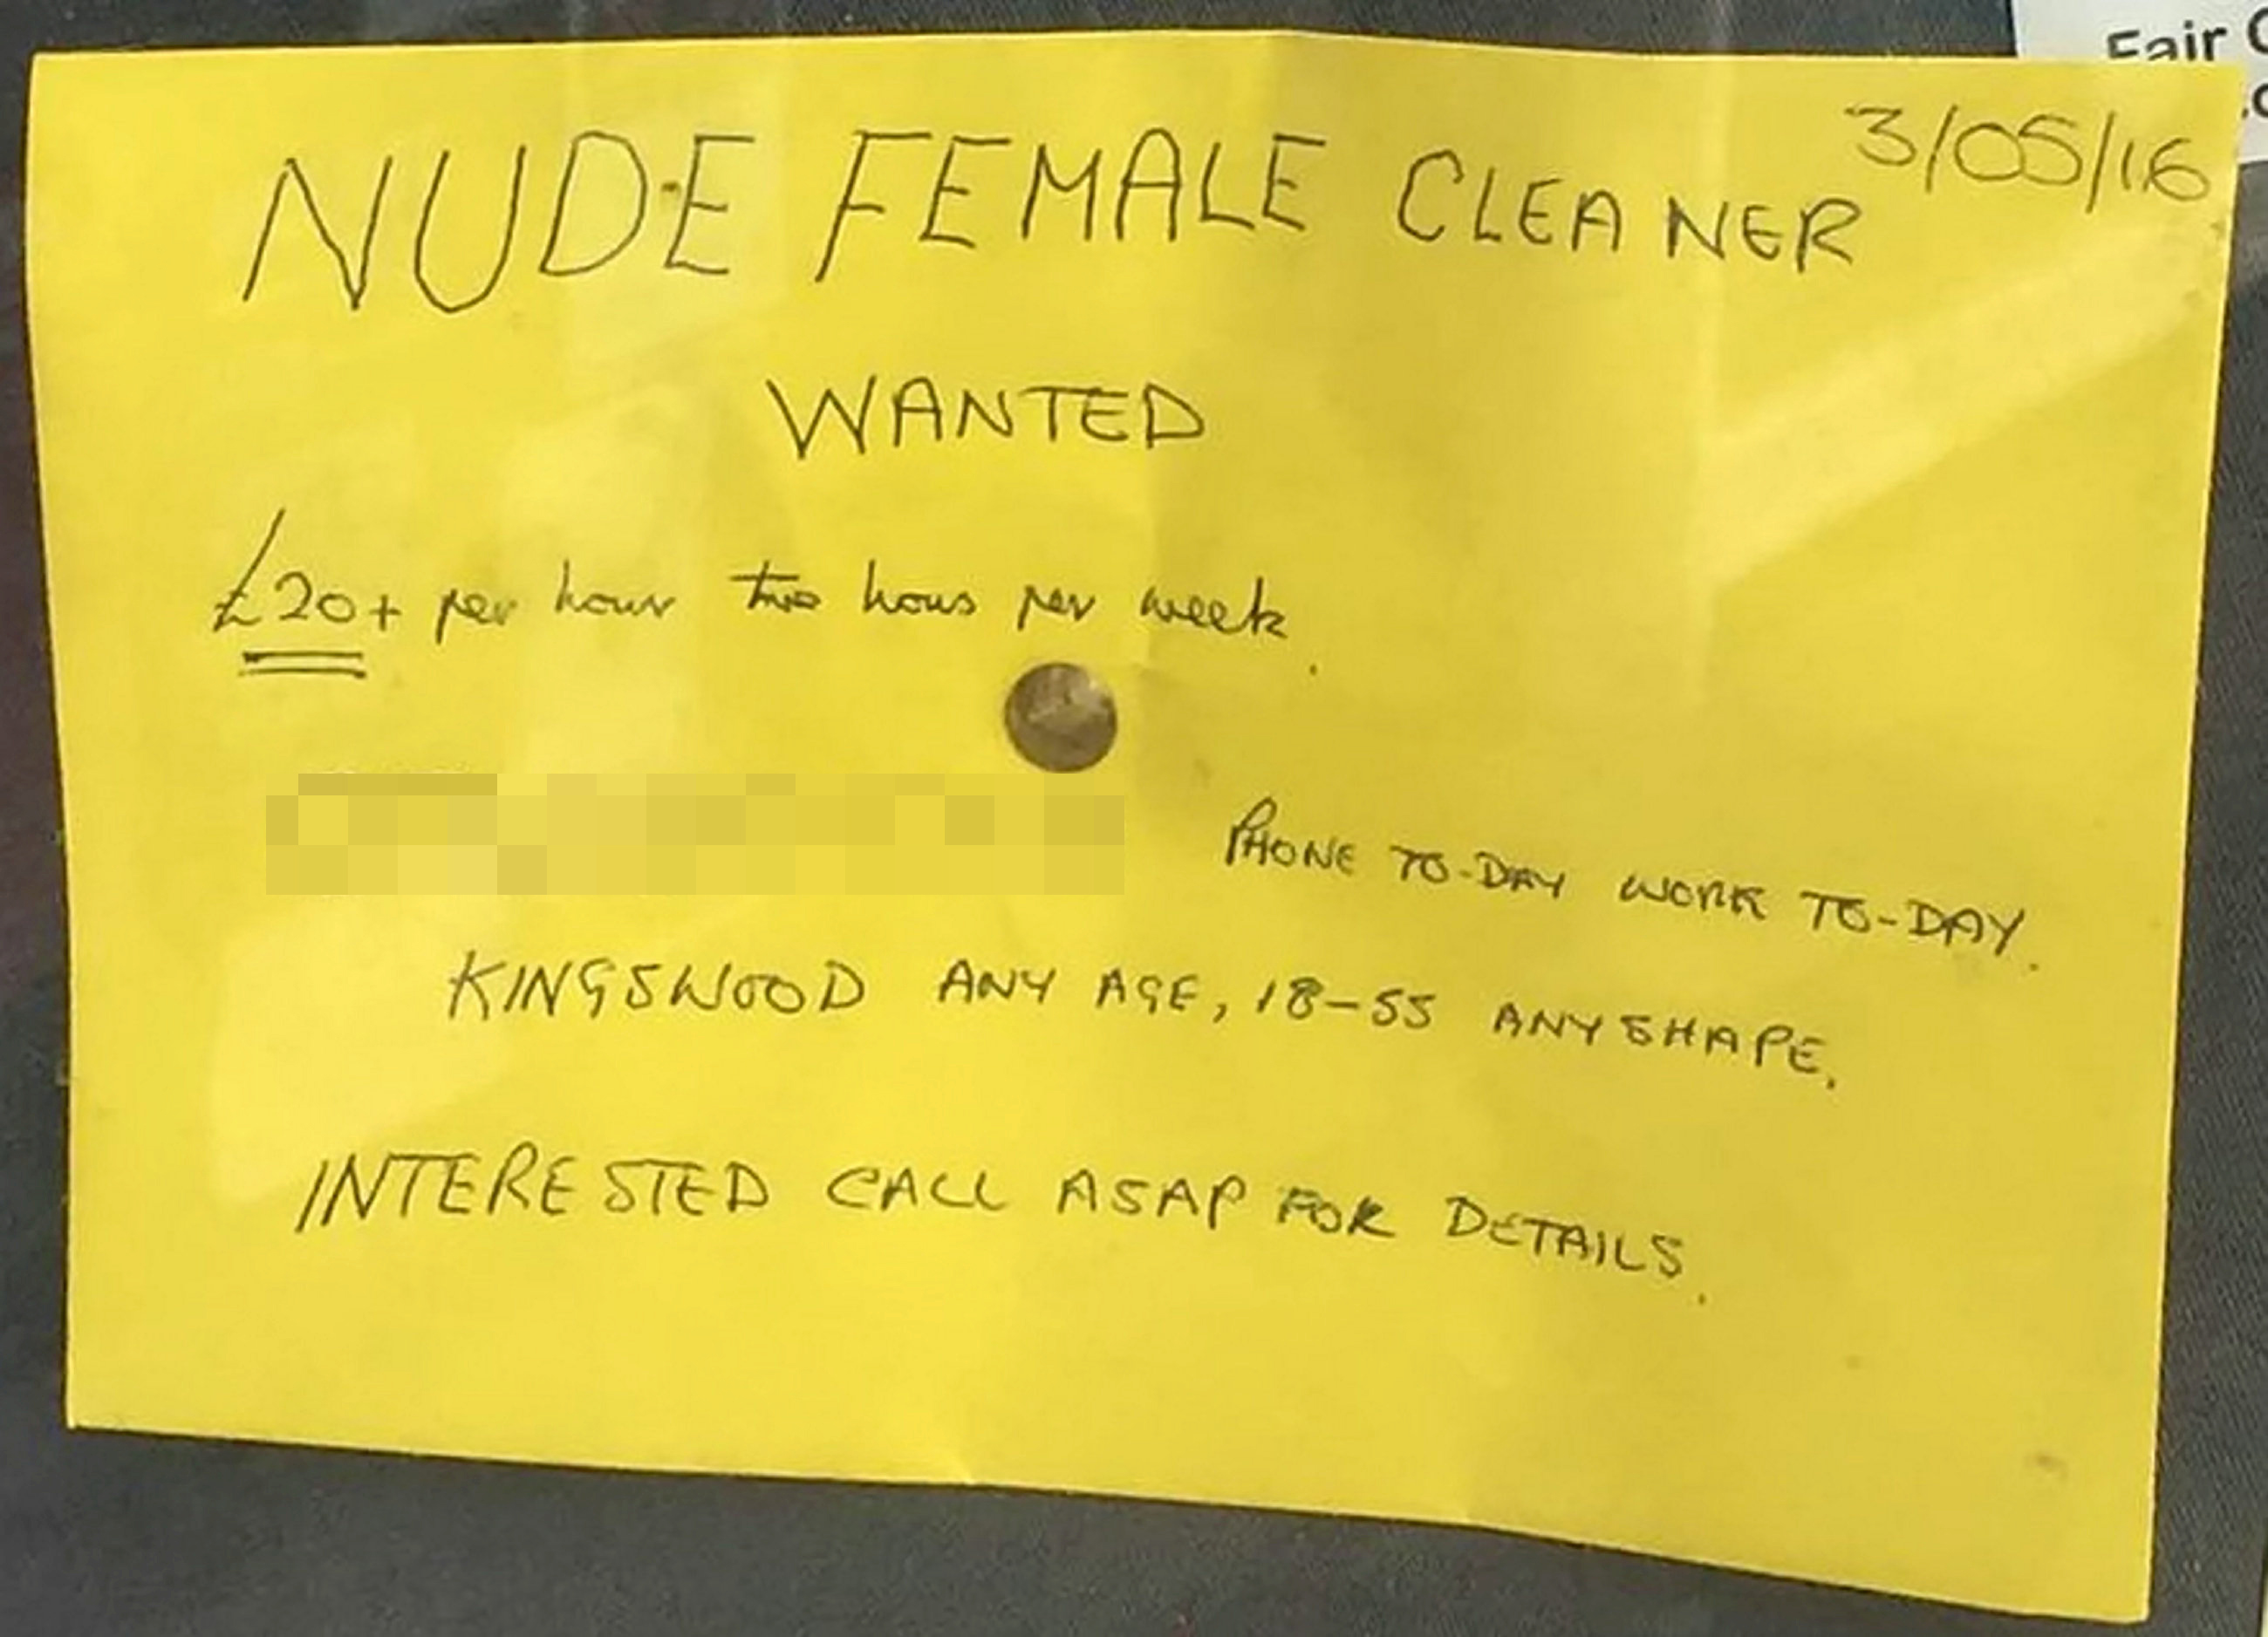 SWNS NUDE CLEANER 01 1 Man, 70, Advertises For Nude Female Cleaner, Gets Incredible Response